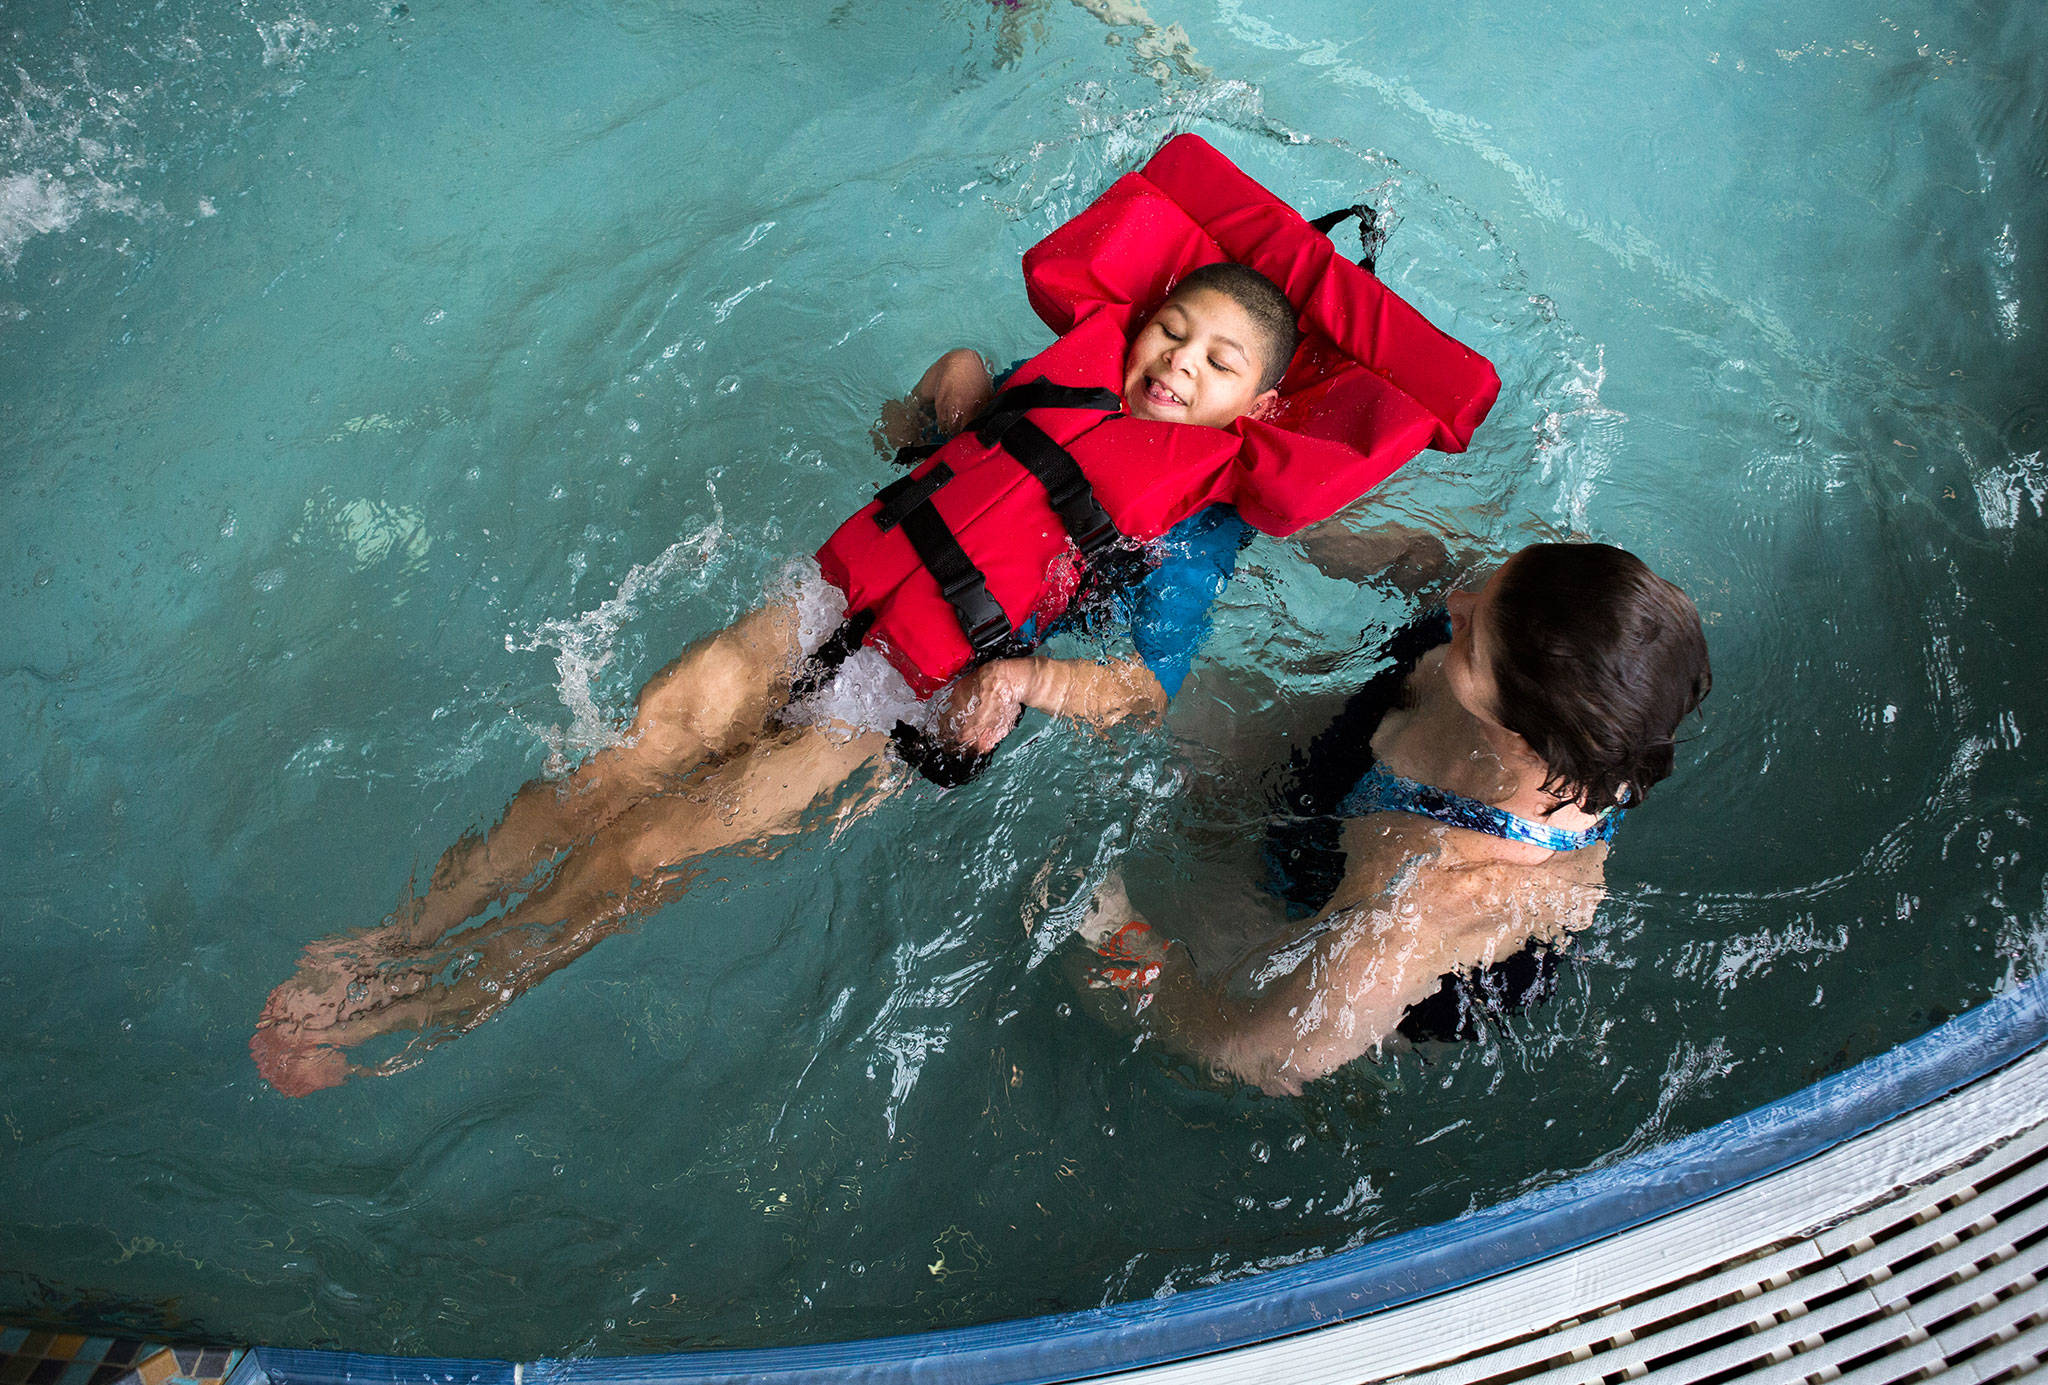 Jamarious Carpenter, 11, is guided through the water by his grandmother, Ginger Carpenter, during his birthday celebration at the Lynnwood Recreation Center & Pool on Jan. 20. (Olivia Vanni / The Herald)